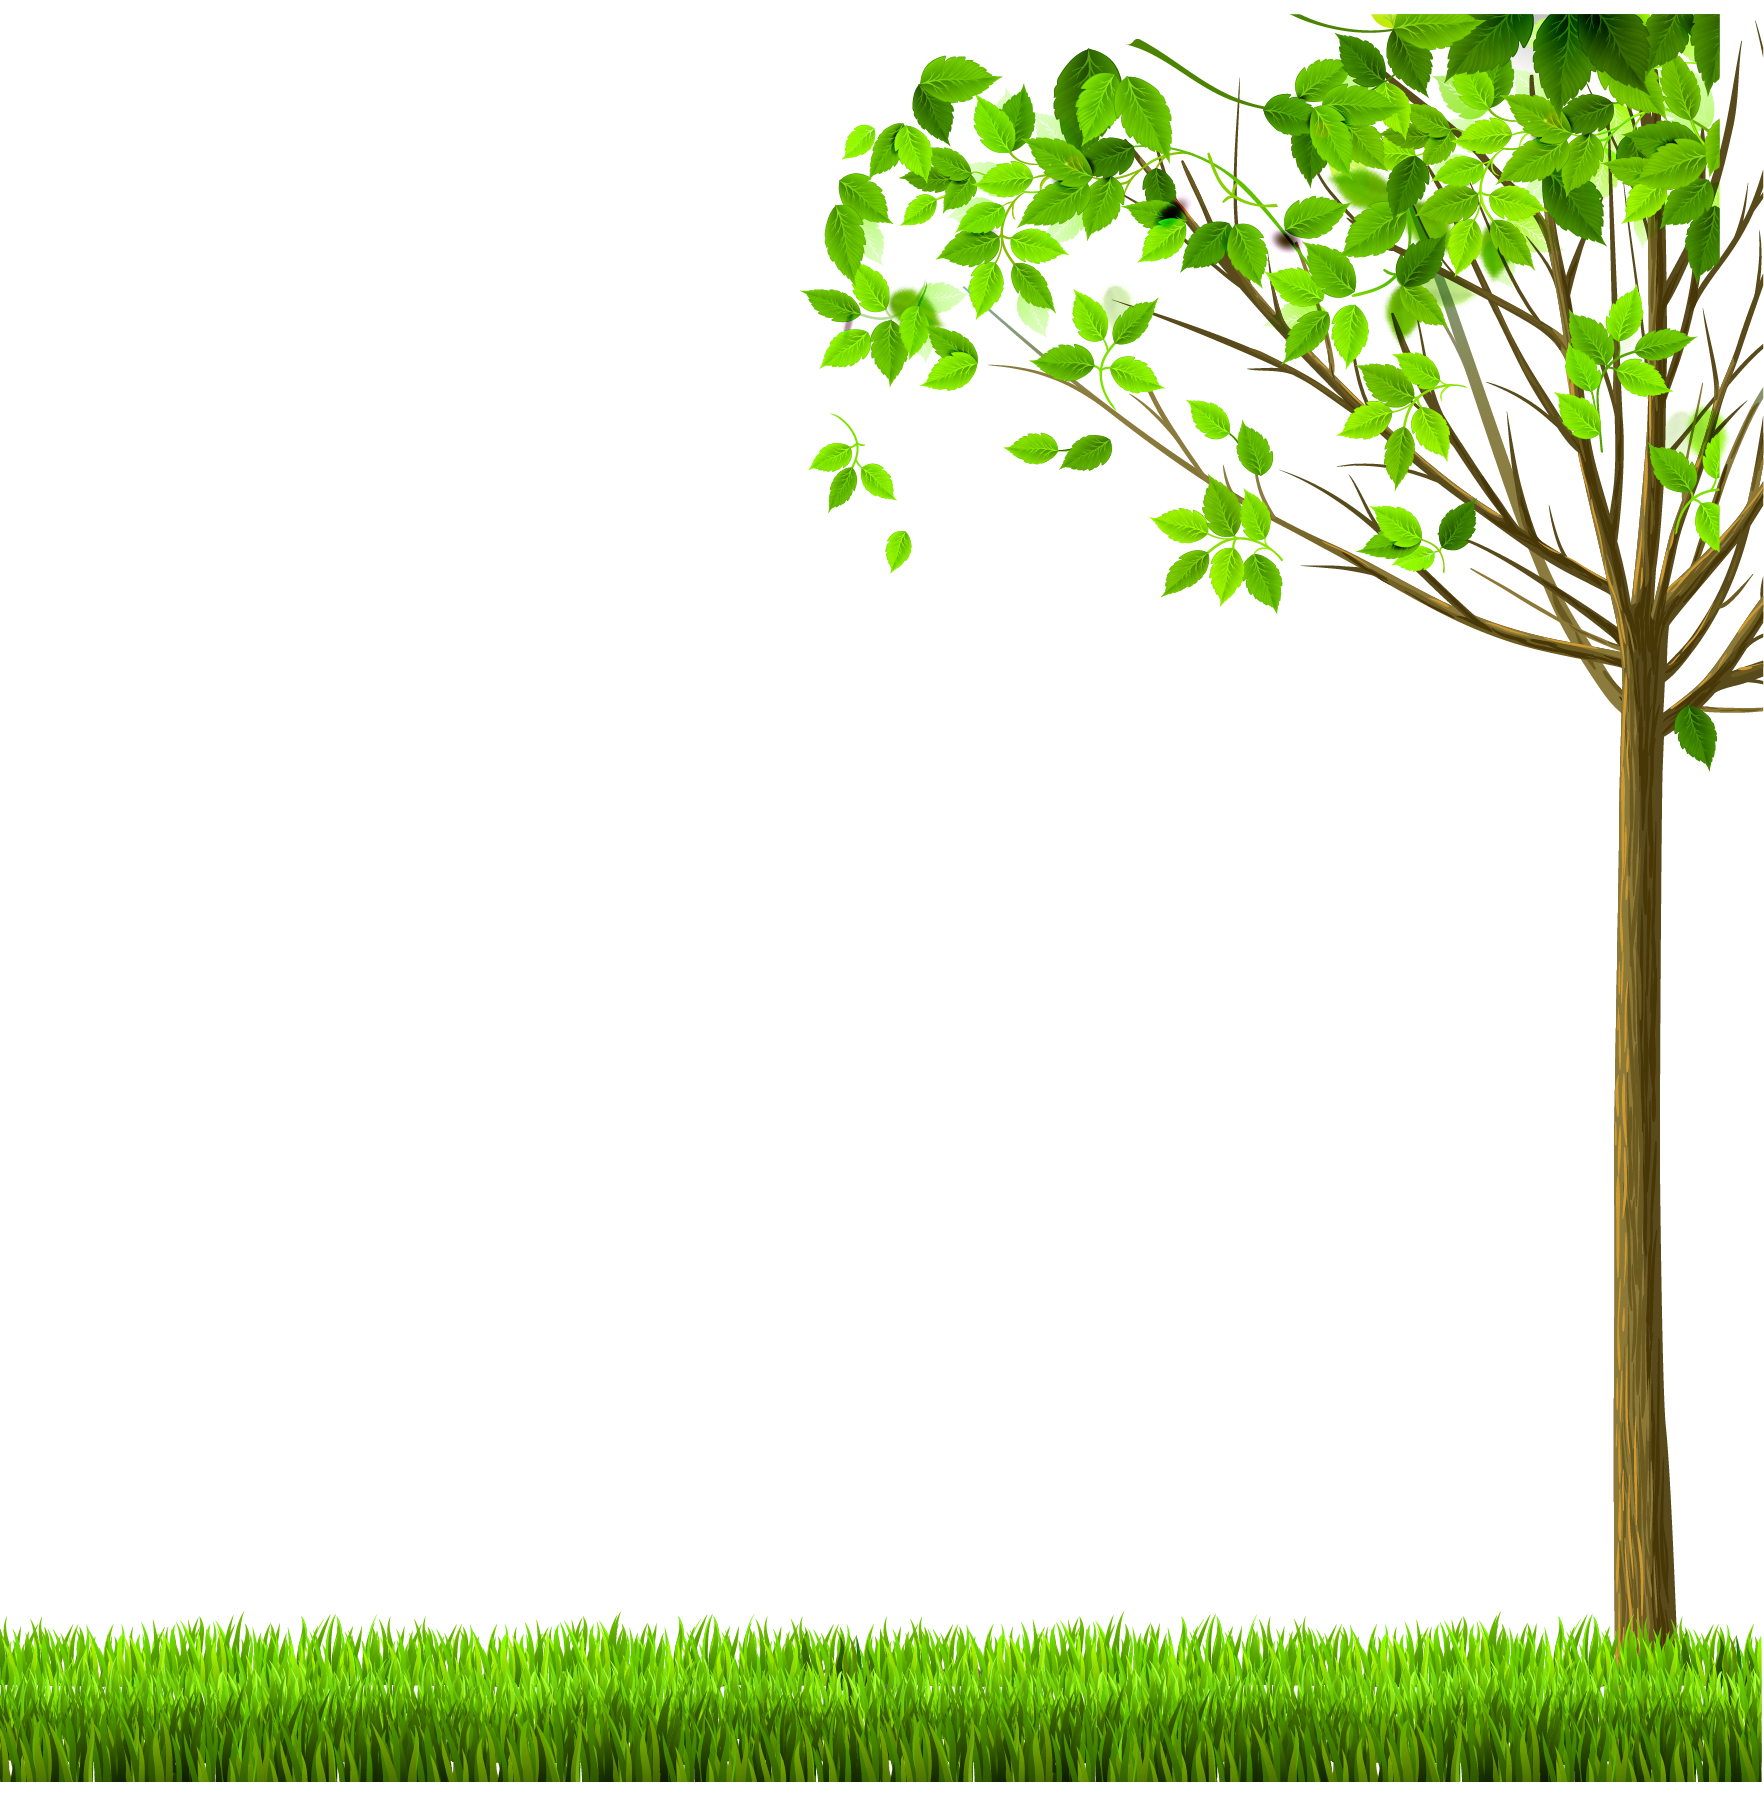 Transparent free images only. Nature png graphic library download